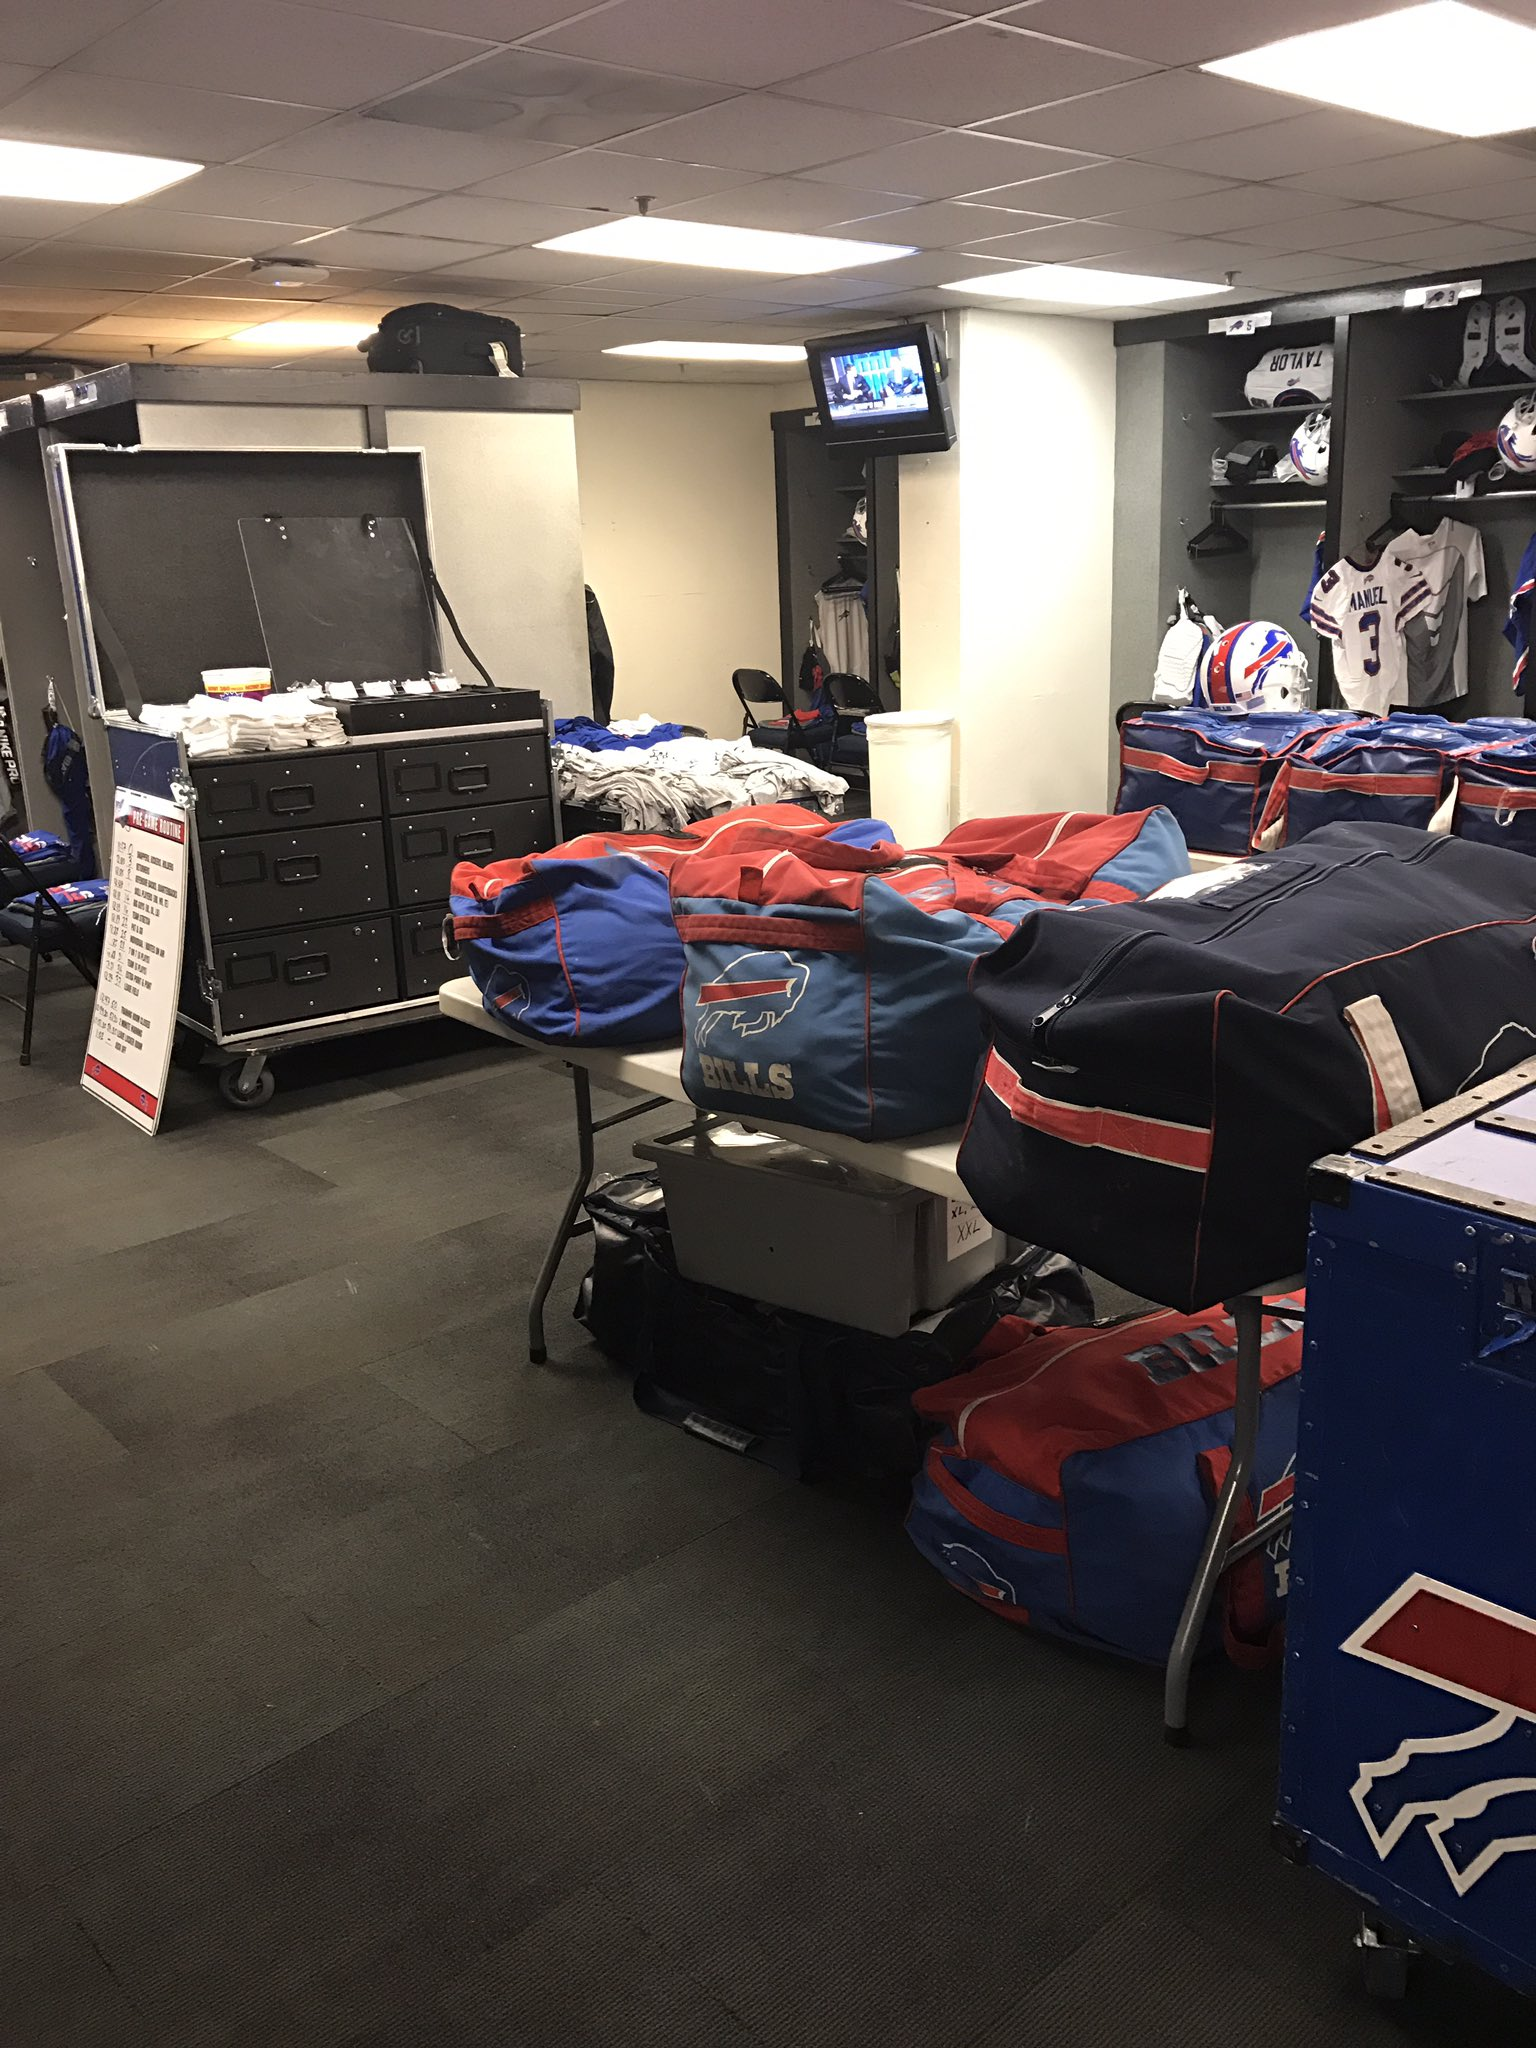 Our equipment room setup. https://t.co/0UMNNvDWif